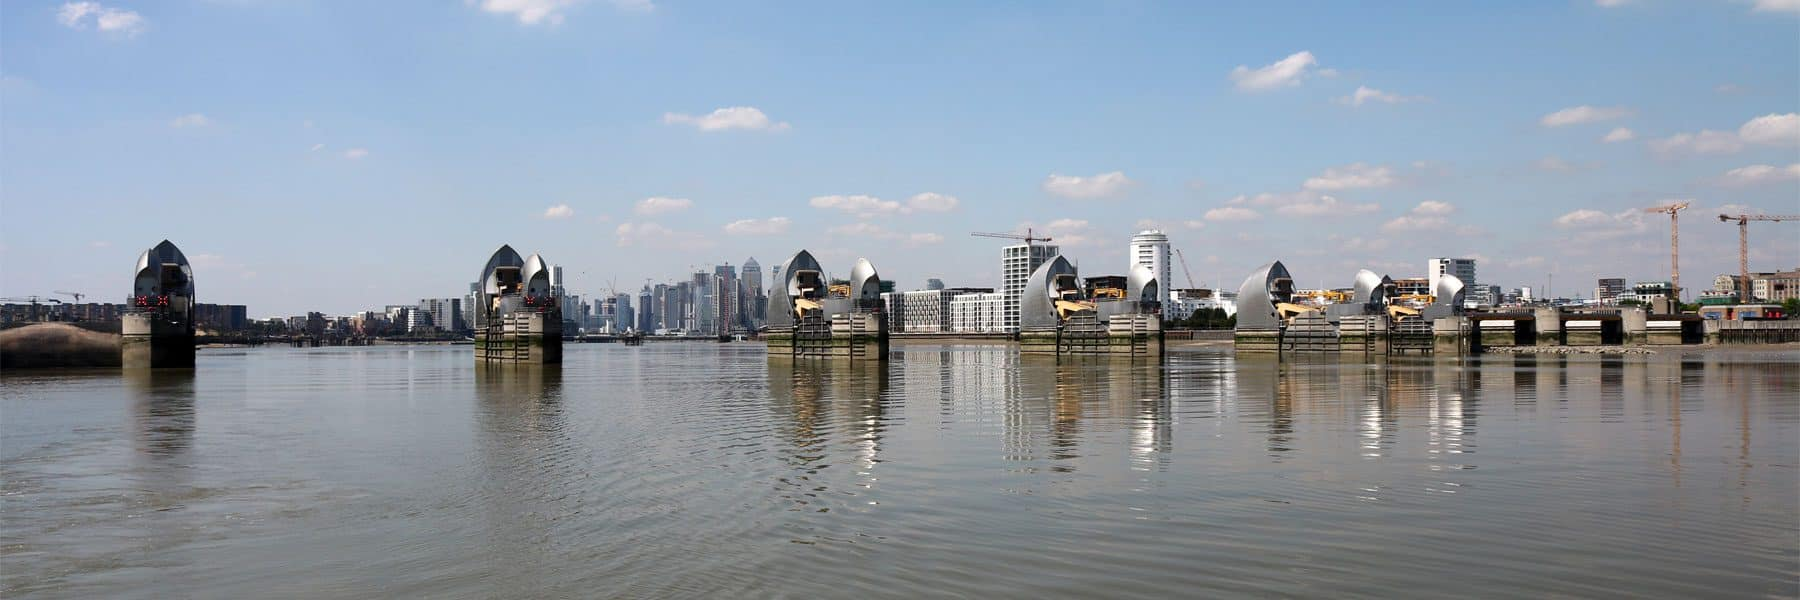 Thames Flood Barrier, Woolwich Reach